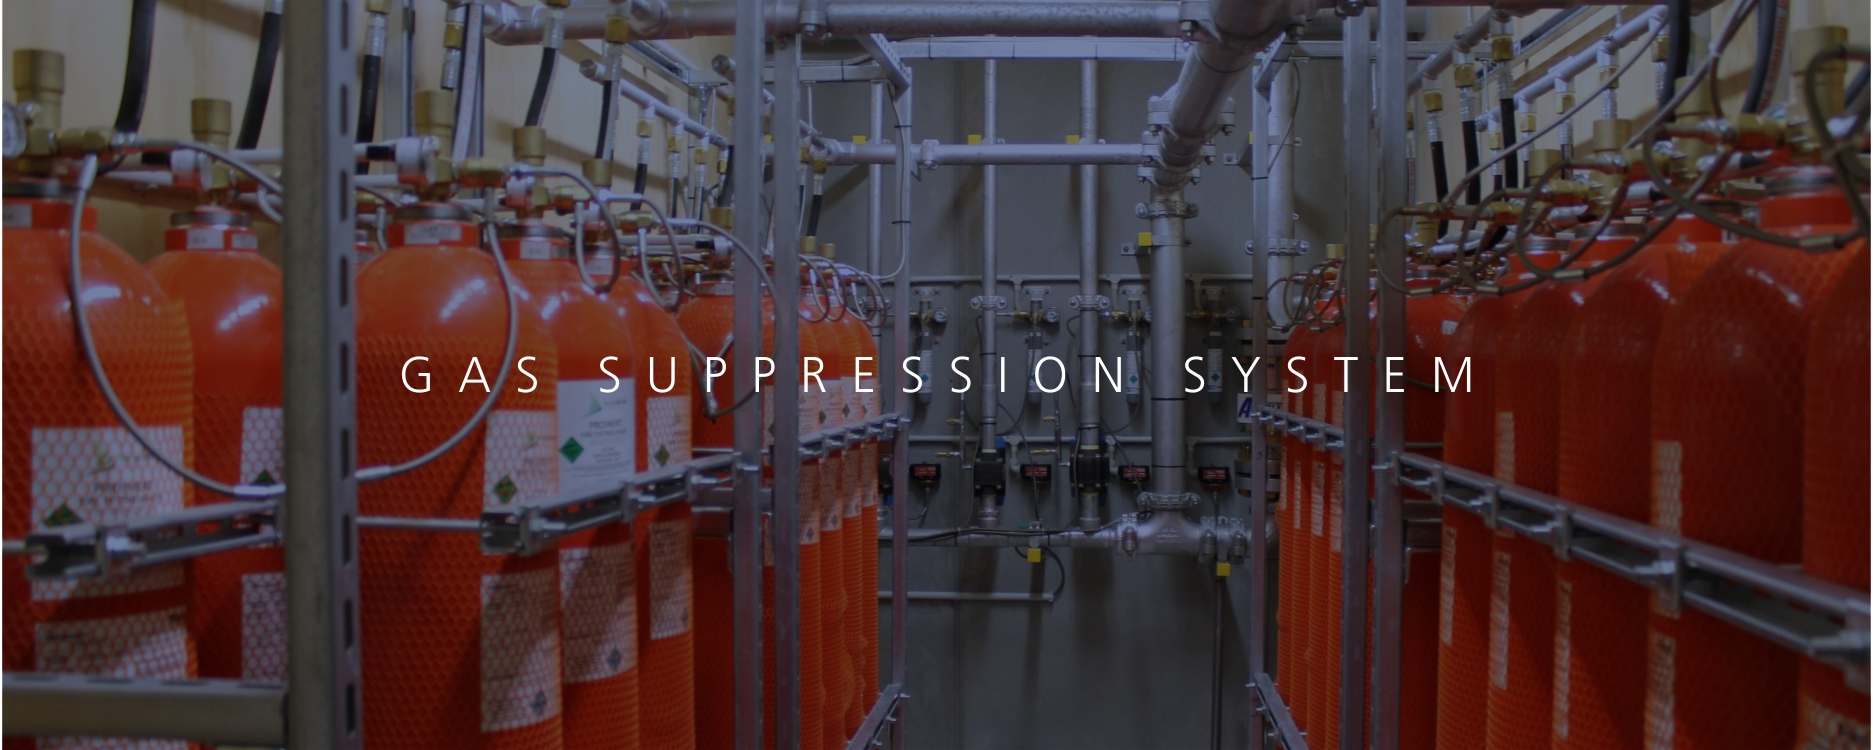 Gas- Suppression- System